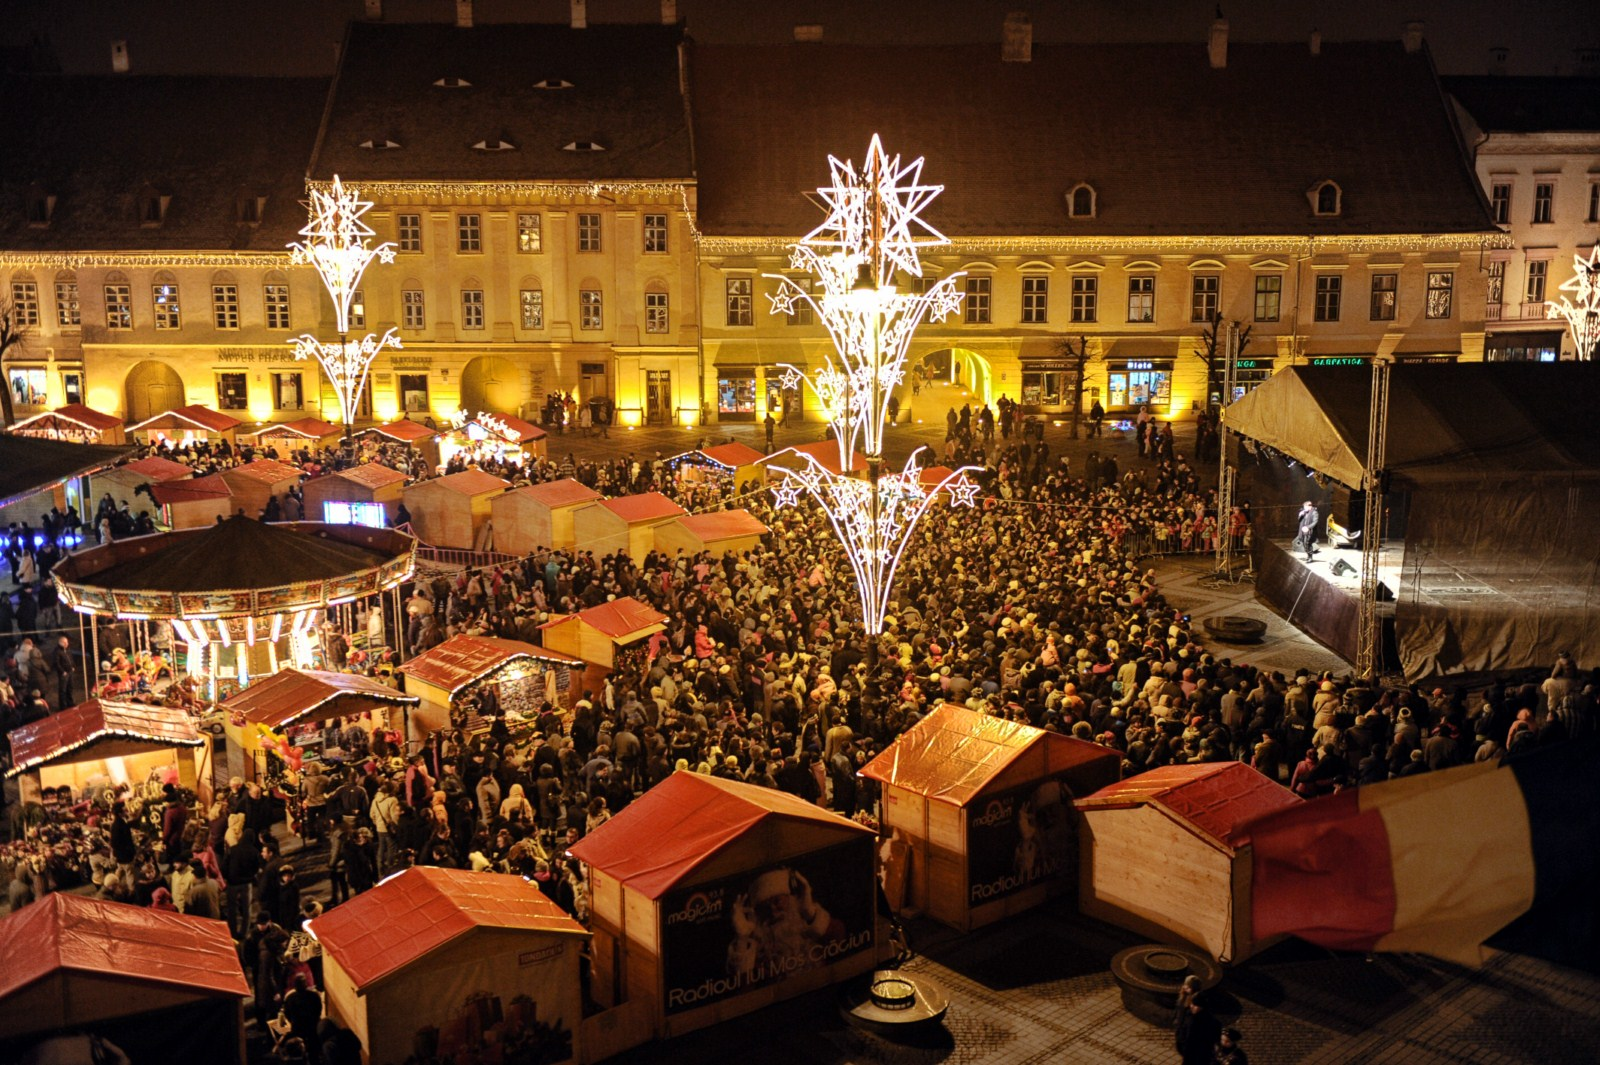 The Sibiu Christmas Market